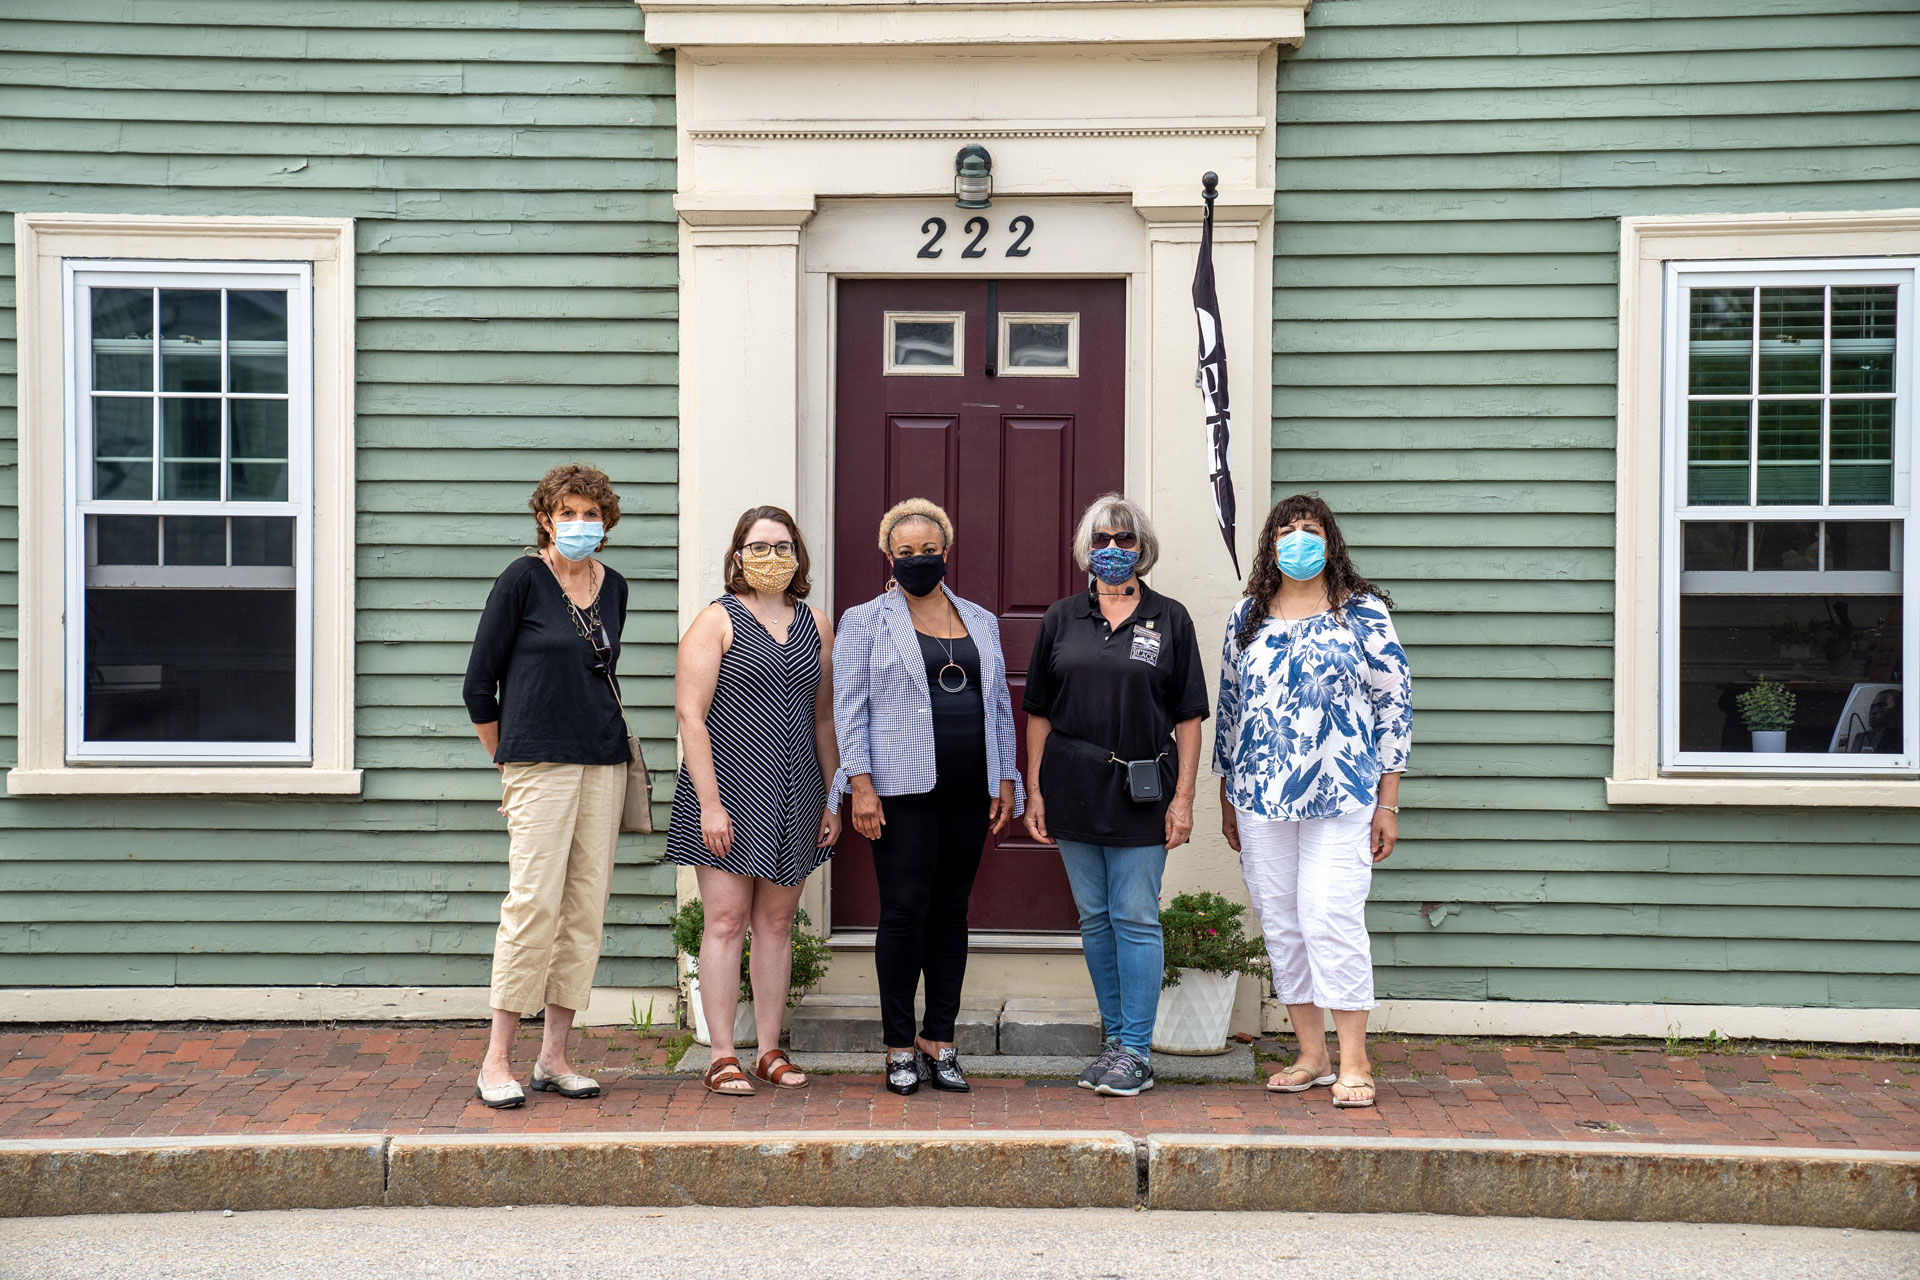 Black Heritage Trail of NH staff and volunteers in front of their headquarters.